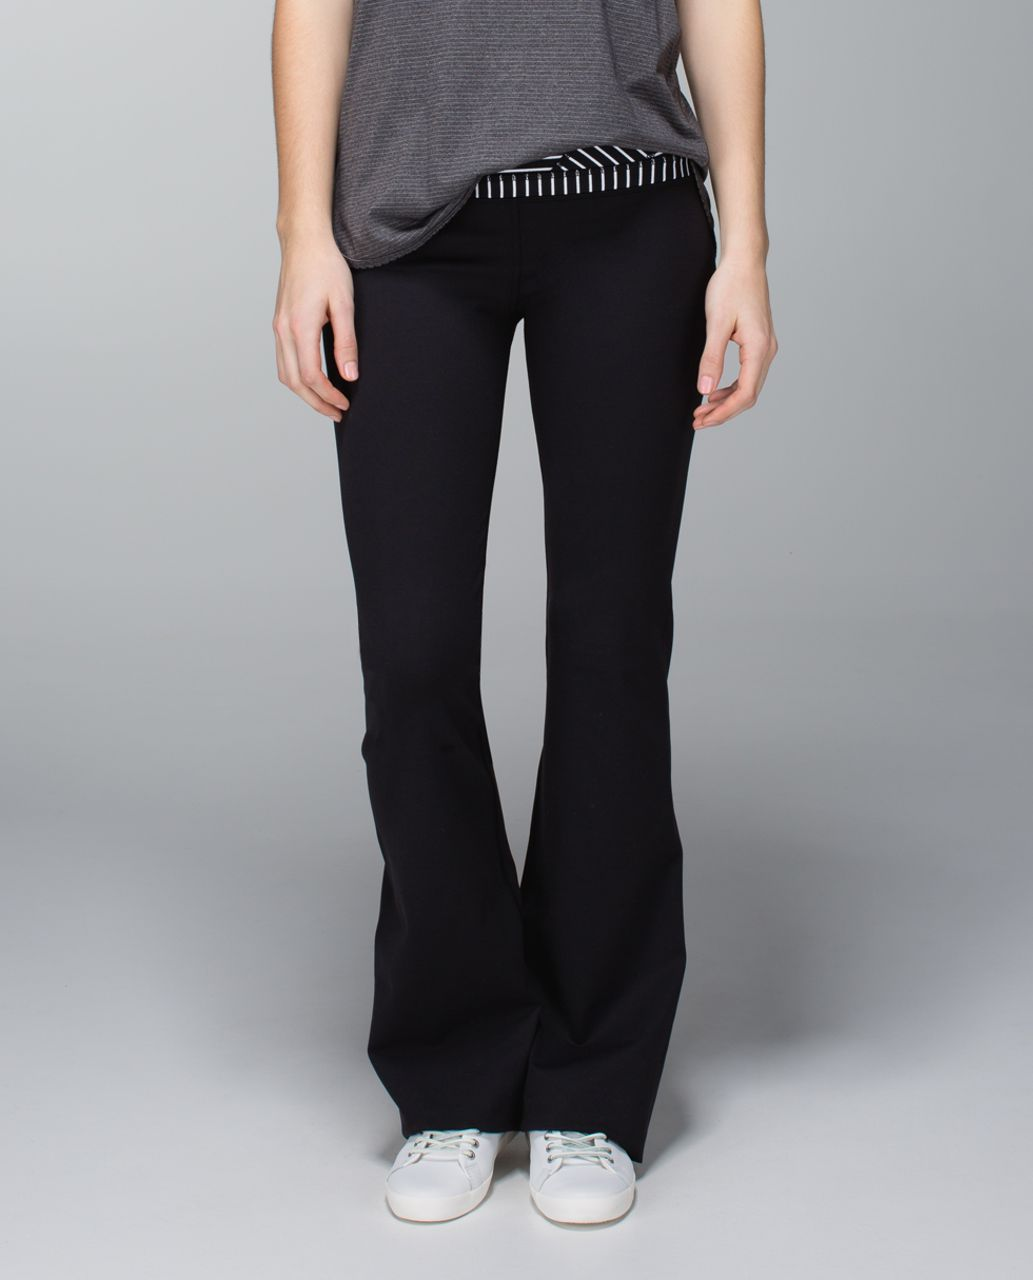 Lululemon Groove Pant (Regular) *Full-On Luon - Black / Quilt Winter 13-13